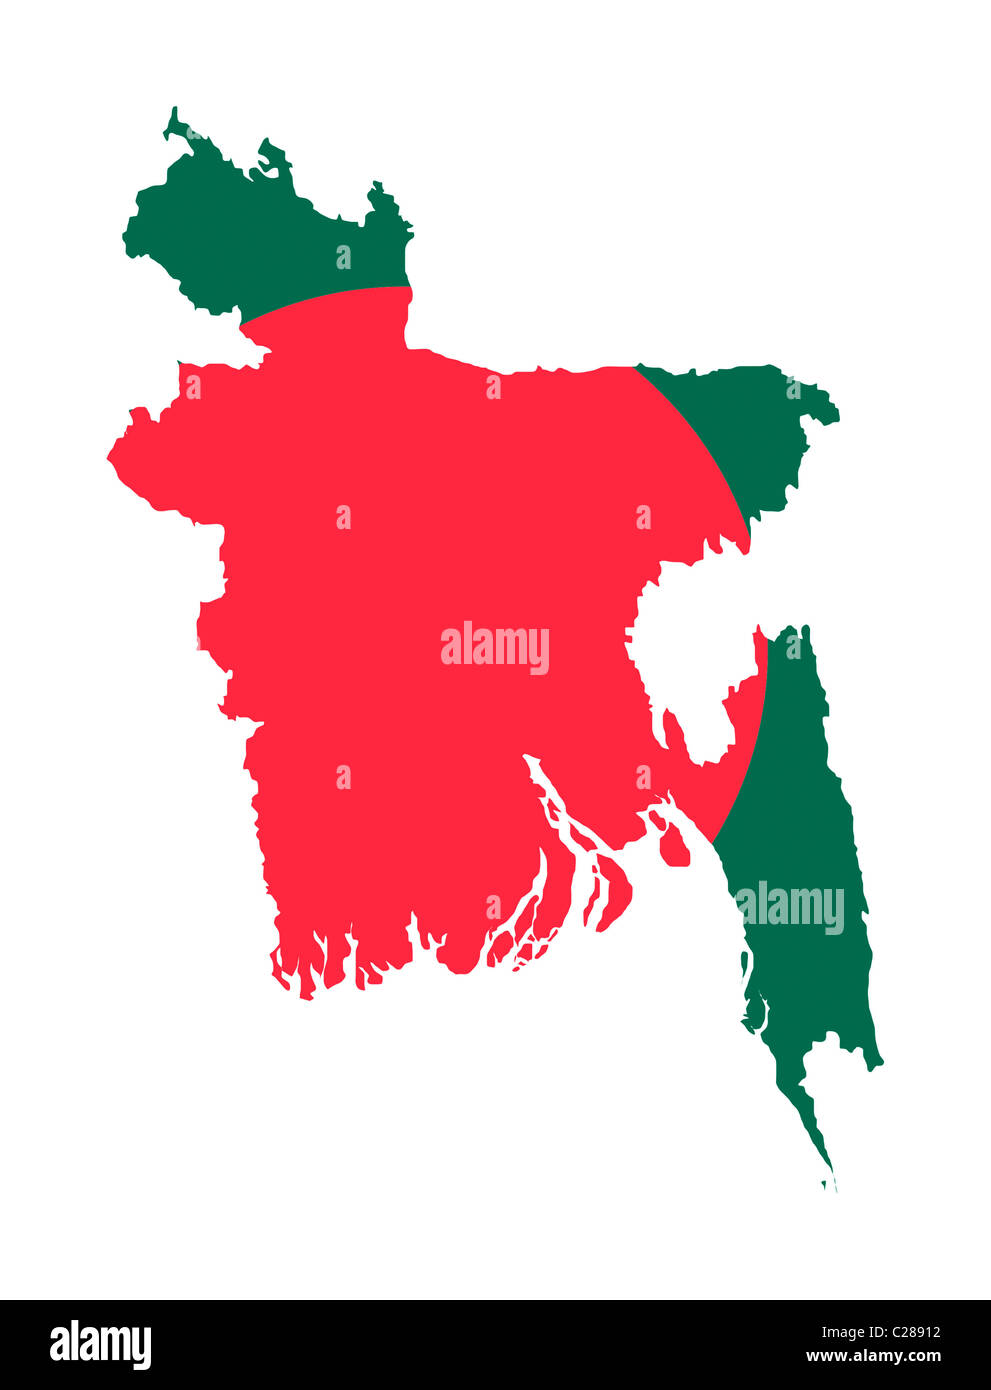 Illustration Of Bangladesh Flag On Map Of Country Isolated